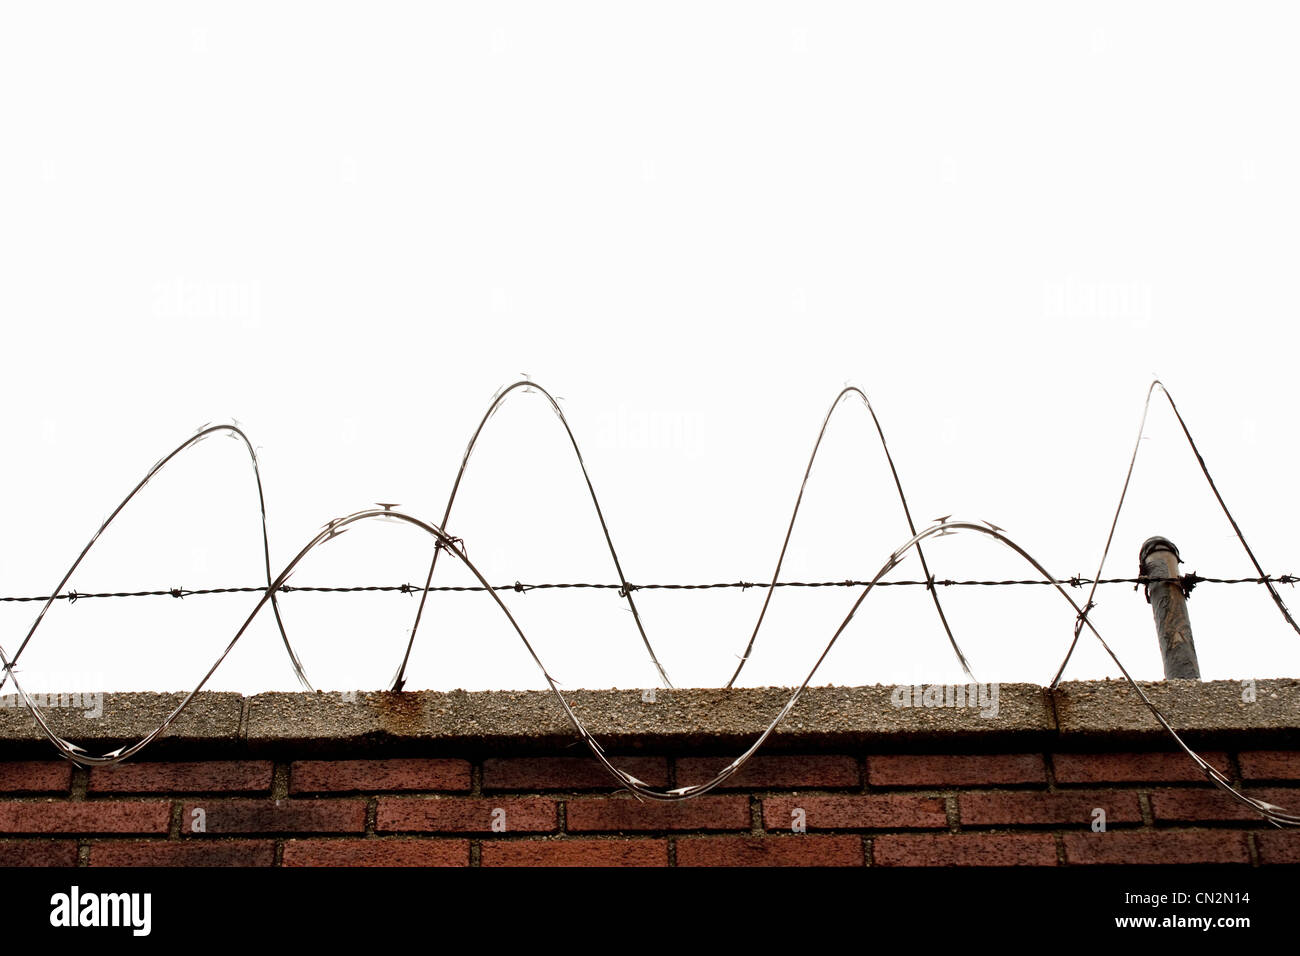 Safety Wire Stock Photos & Safety Wire Stock Images - Alamy